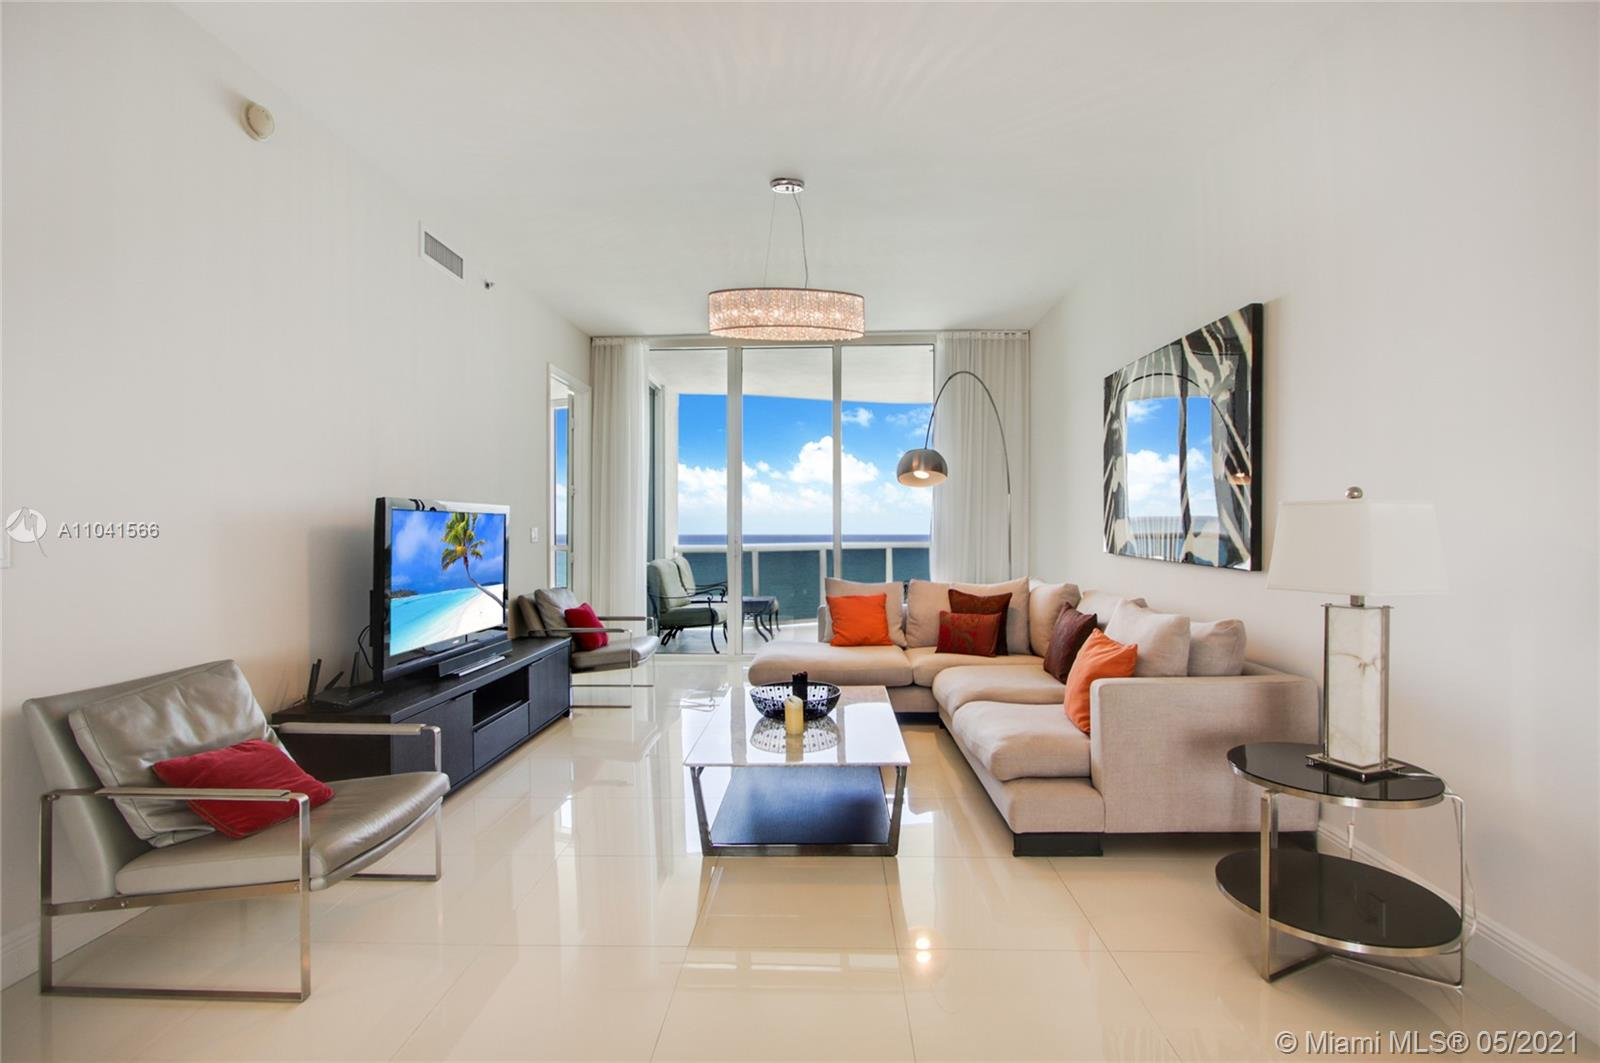 Enjoy breathtaking direct ocean and Intercoastal views from this gorgeous flow-through 3 bedroom 3.5 baths apartment in the heart of Sunny Isles Beach.  Unit features top of the line appliances, Italian kitchen, wine cooler & built in Espresso machine.  Trump Tower II is a full-service property with top quality amenities including two heated pools, fitness center, SPA, complete pool and beach services, business-center, and much more.